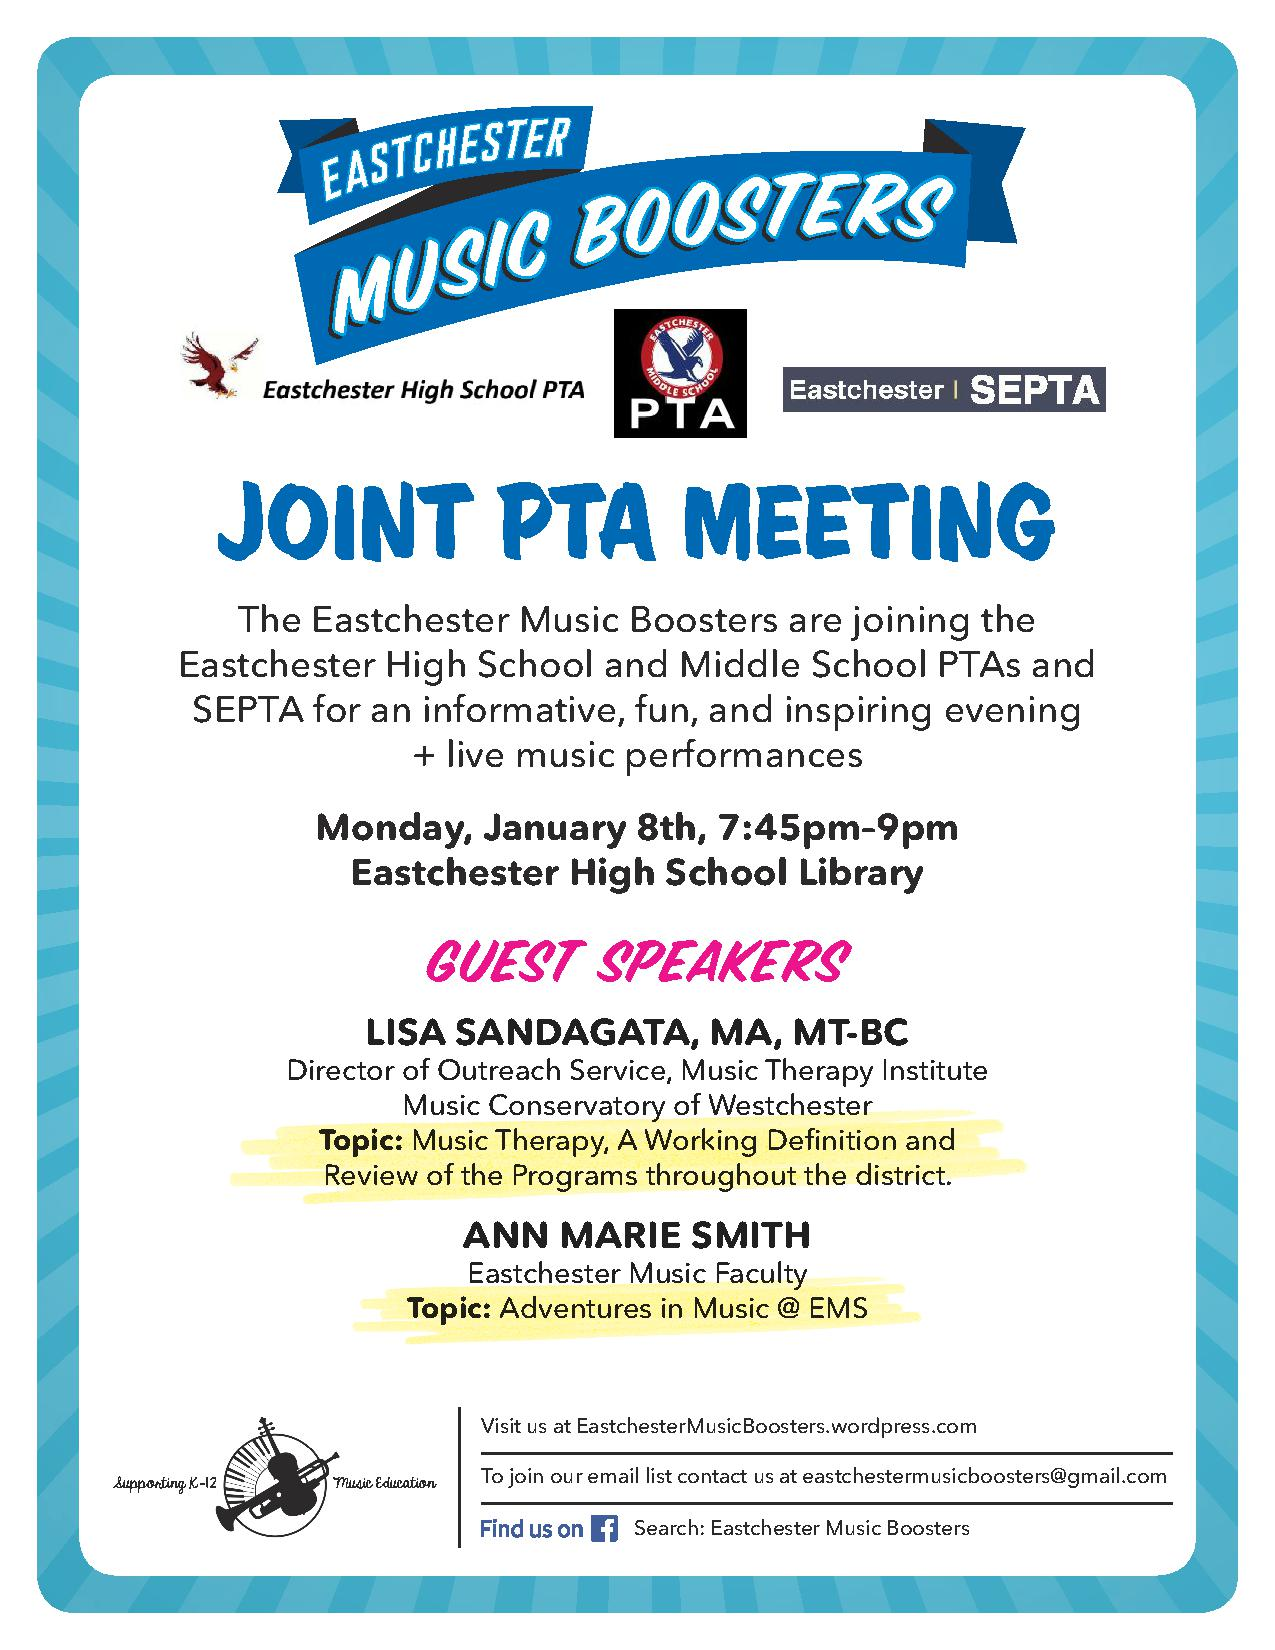 https://schoolbee.com/eastchester/wp-content/uploads/sites/14/2018/01/JointMeeting_Flyer2.jpg